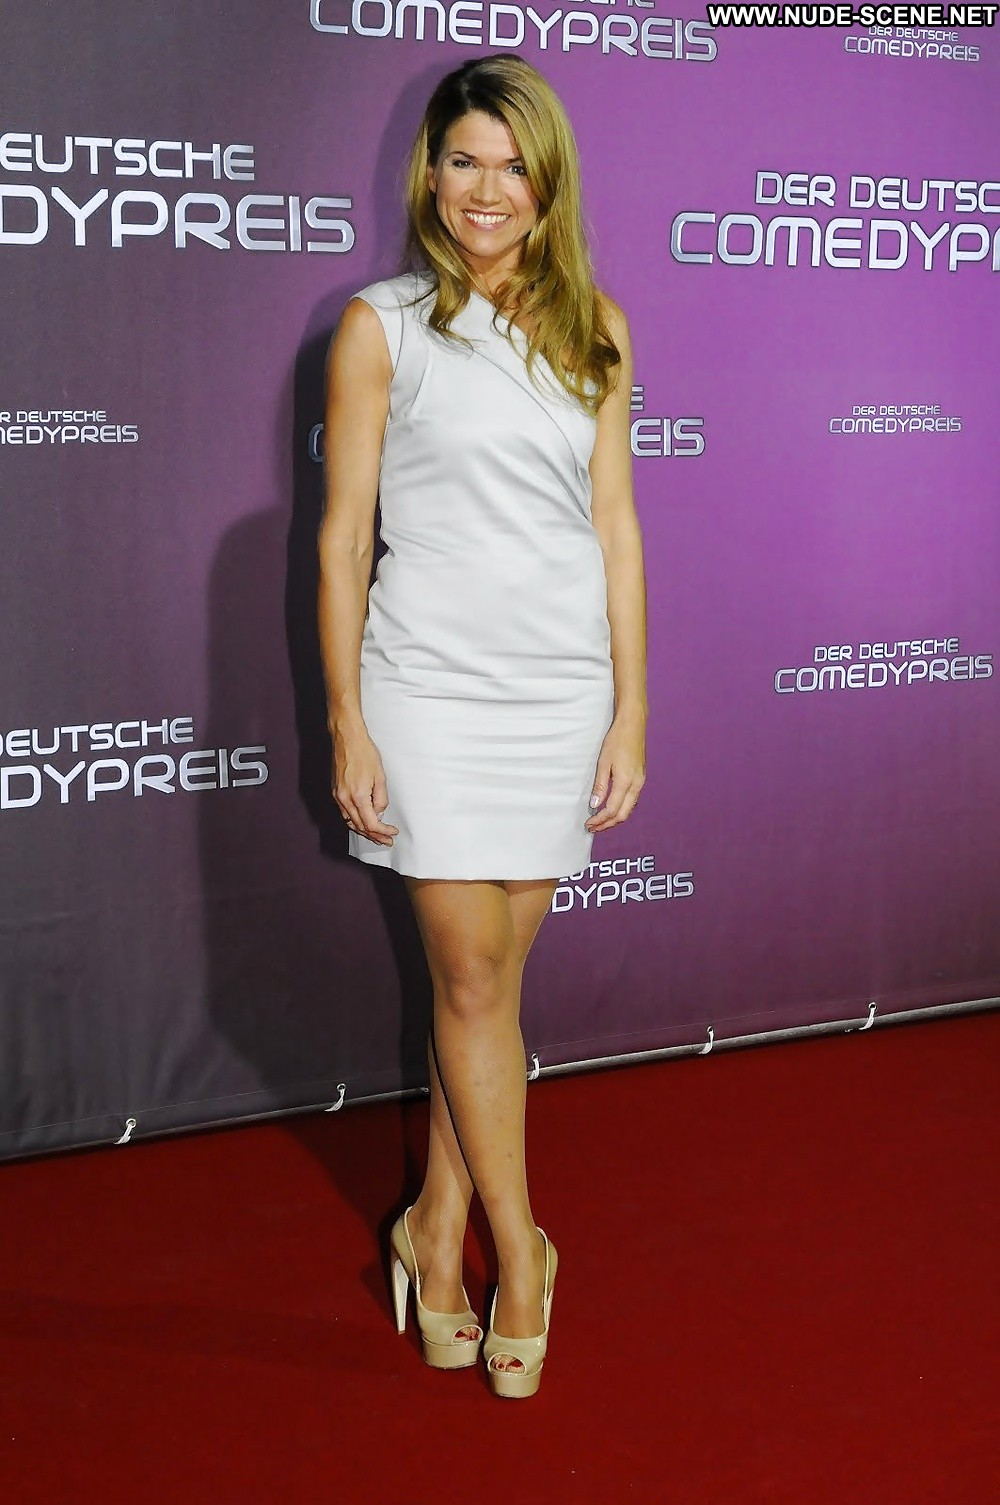 Anke Engelke Pictures Pictures